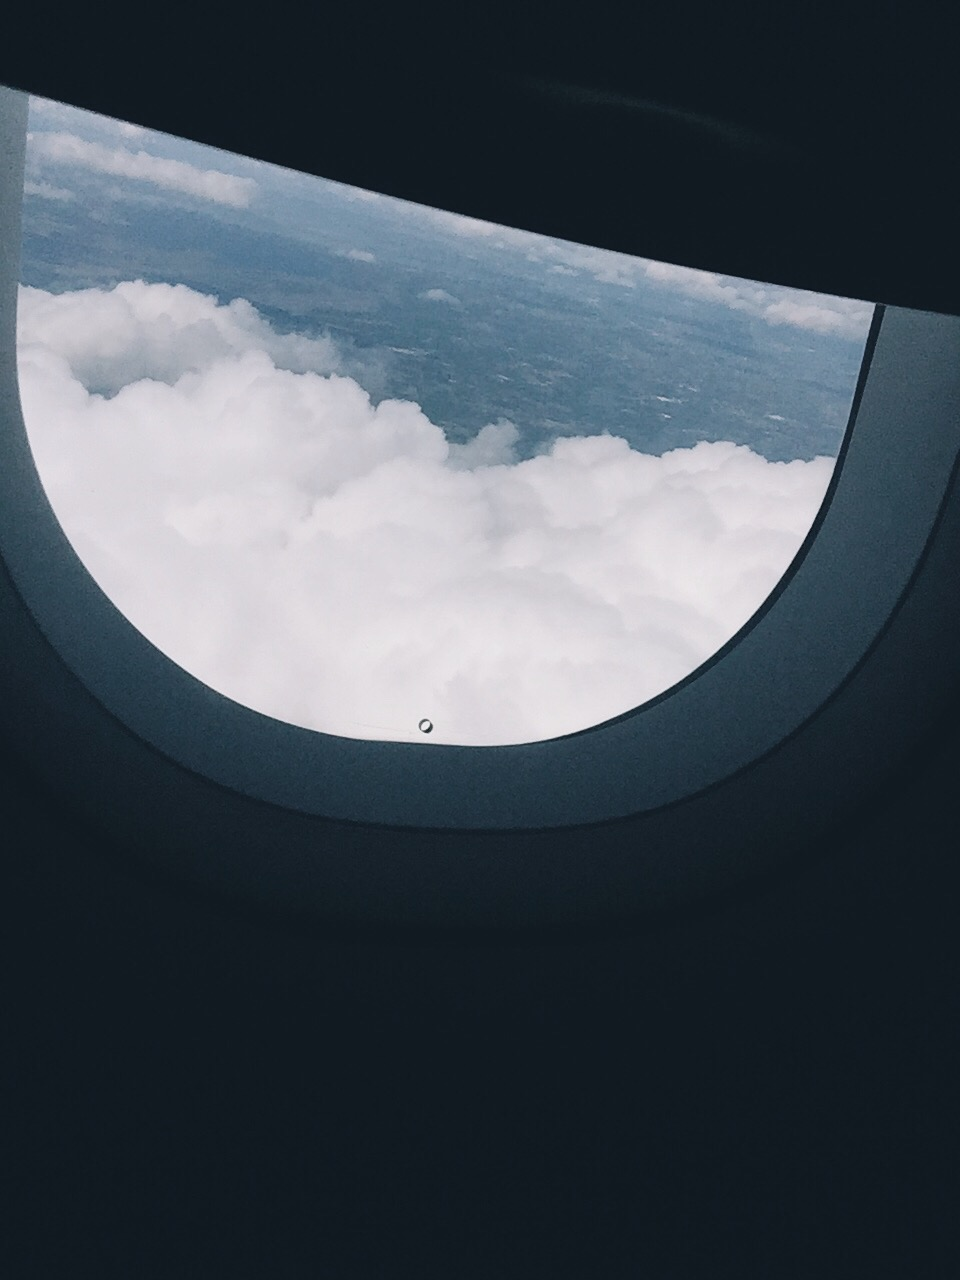 Clouds peeking through the window.